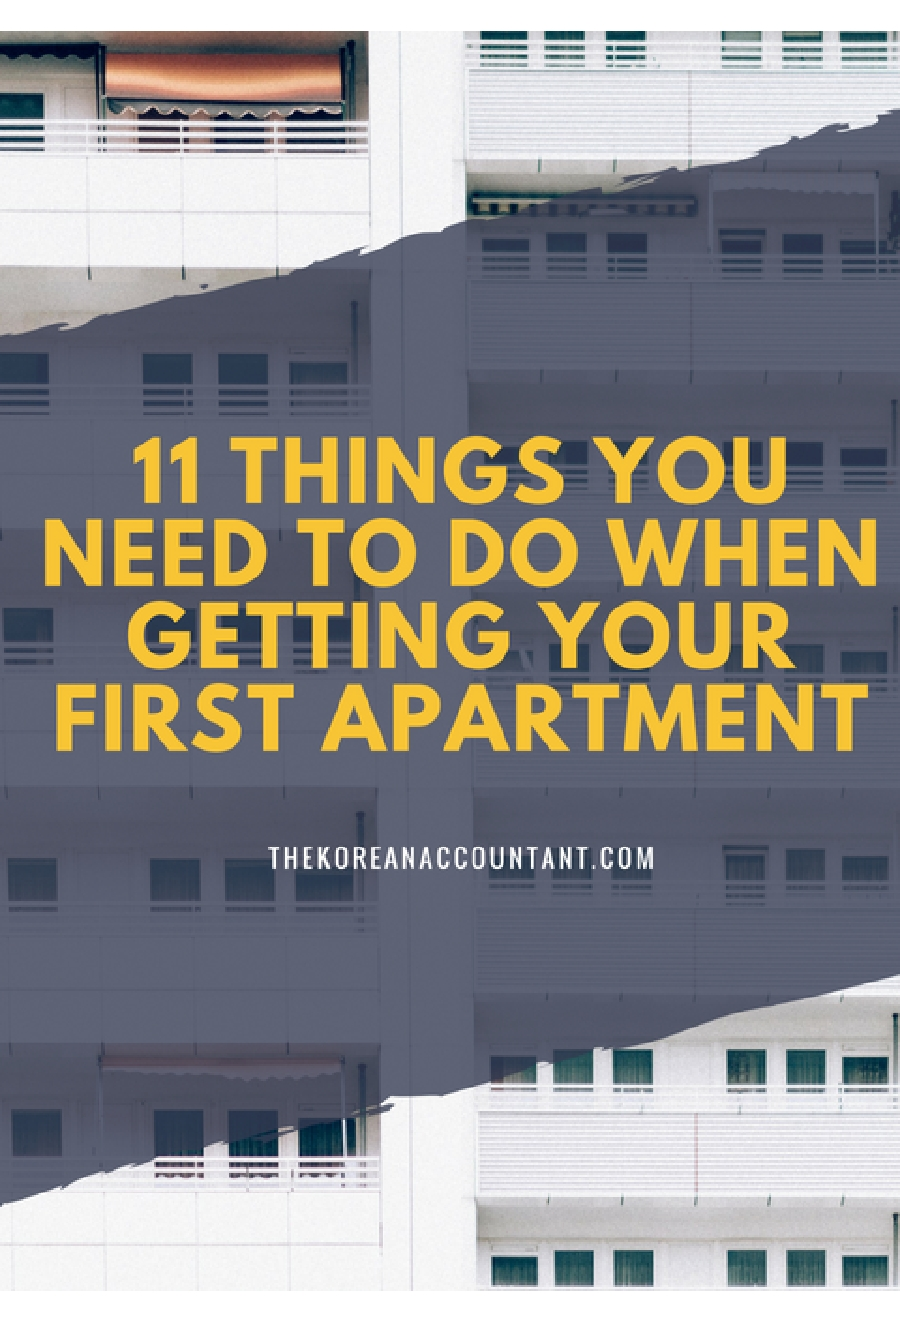 11 Things You Need To Do When Getting Your First Apartment